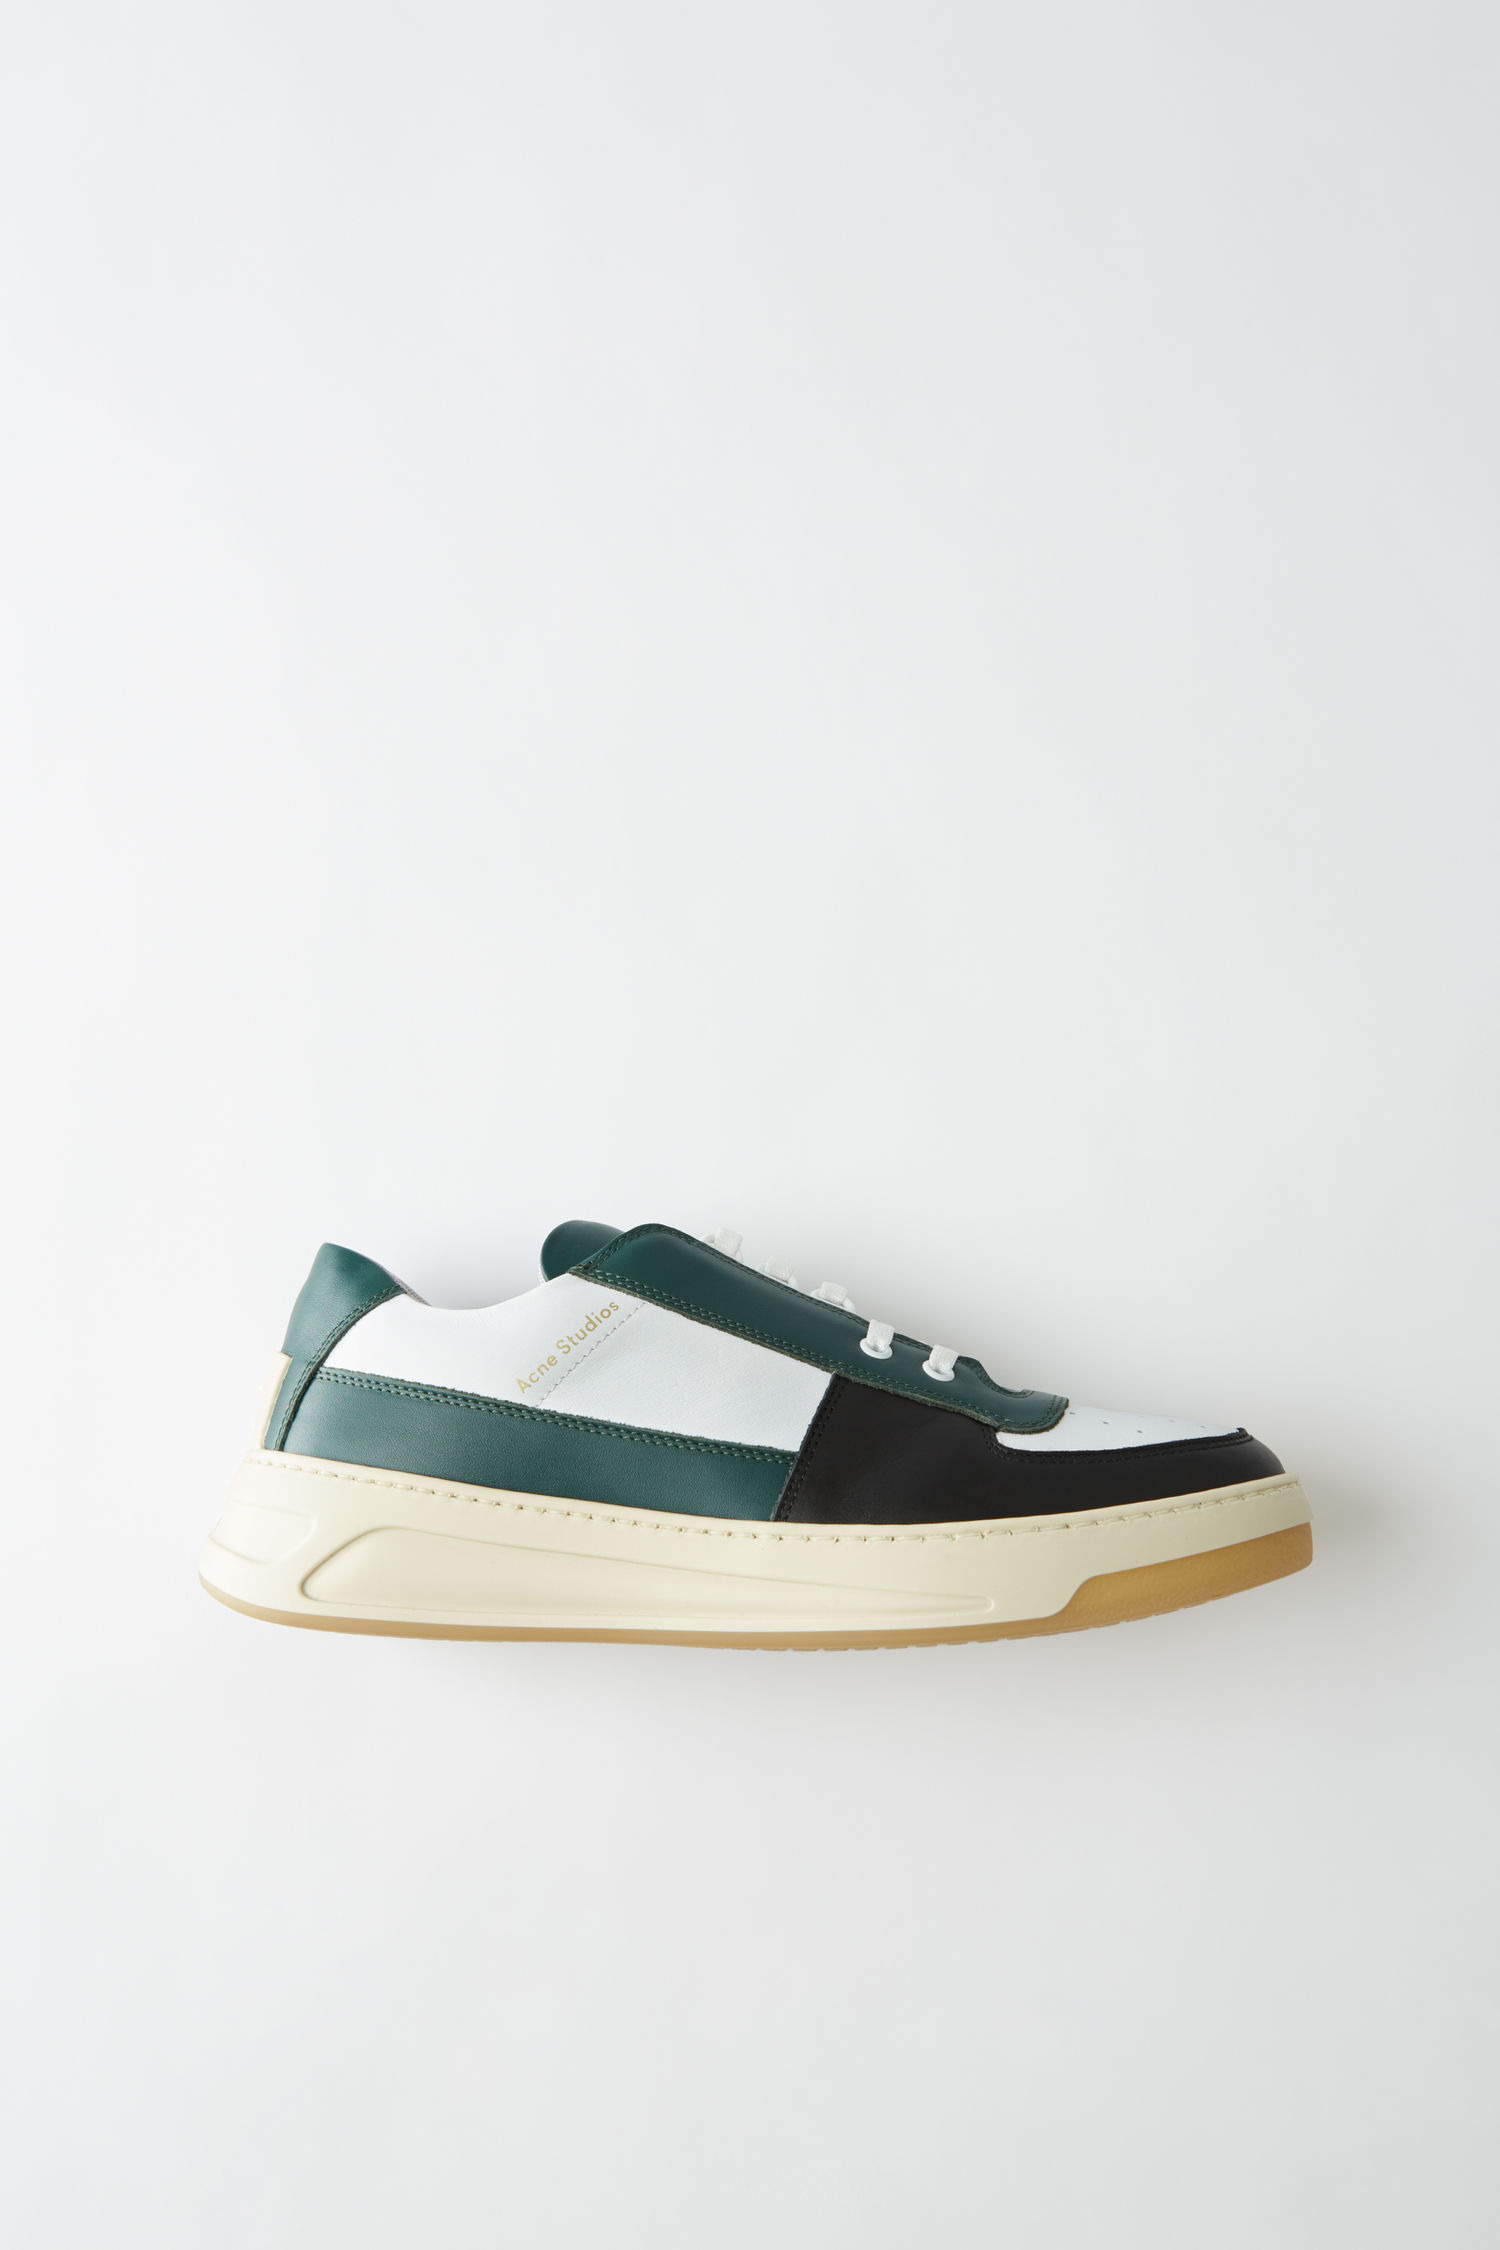 Acne Studios Perey Lace Up in Mix green multi (€340)